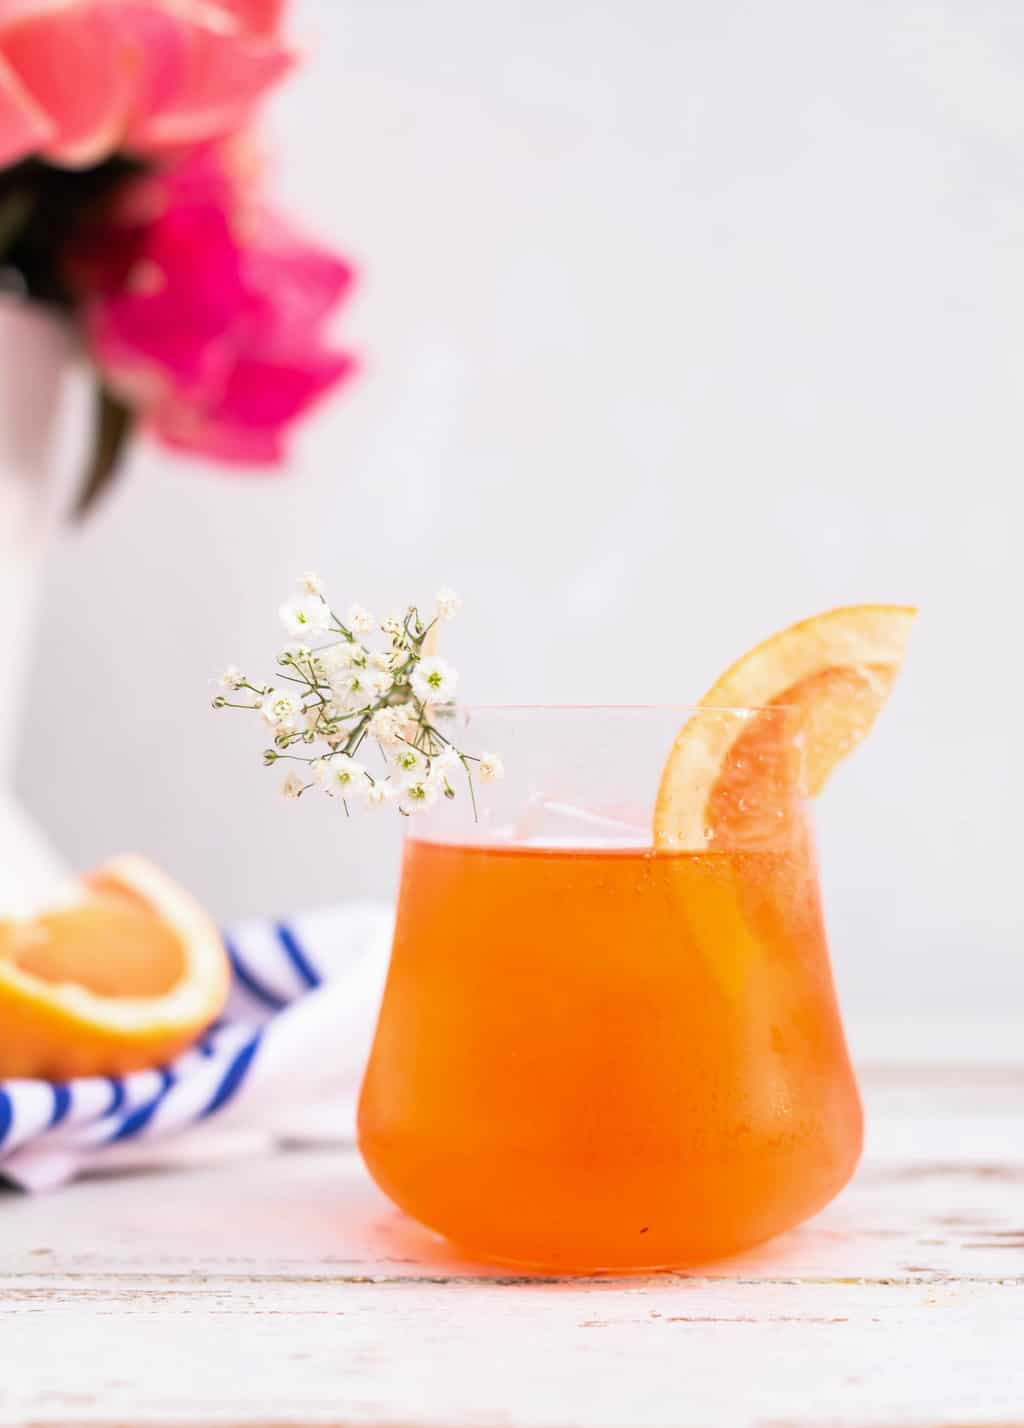 photo of a grapefruit slice and baby's breath as garnishes for an Elderflower Aperol Spritz by top Houston lifestyle blogger Ashley Rose of Sugar & Cloth